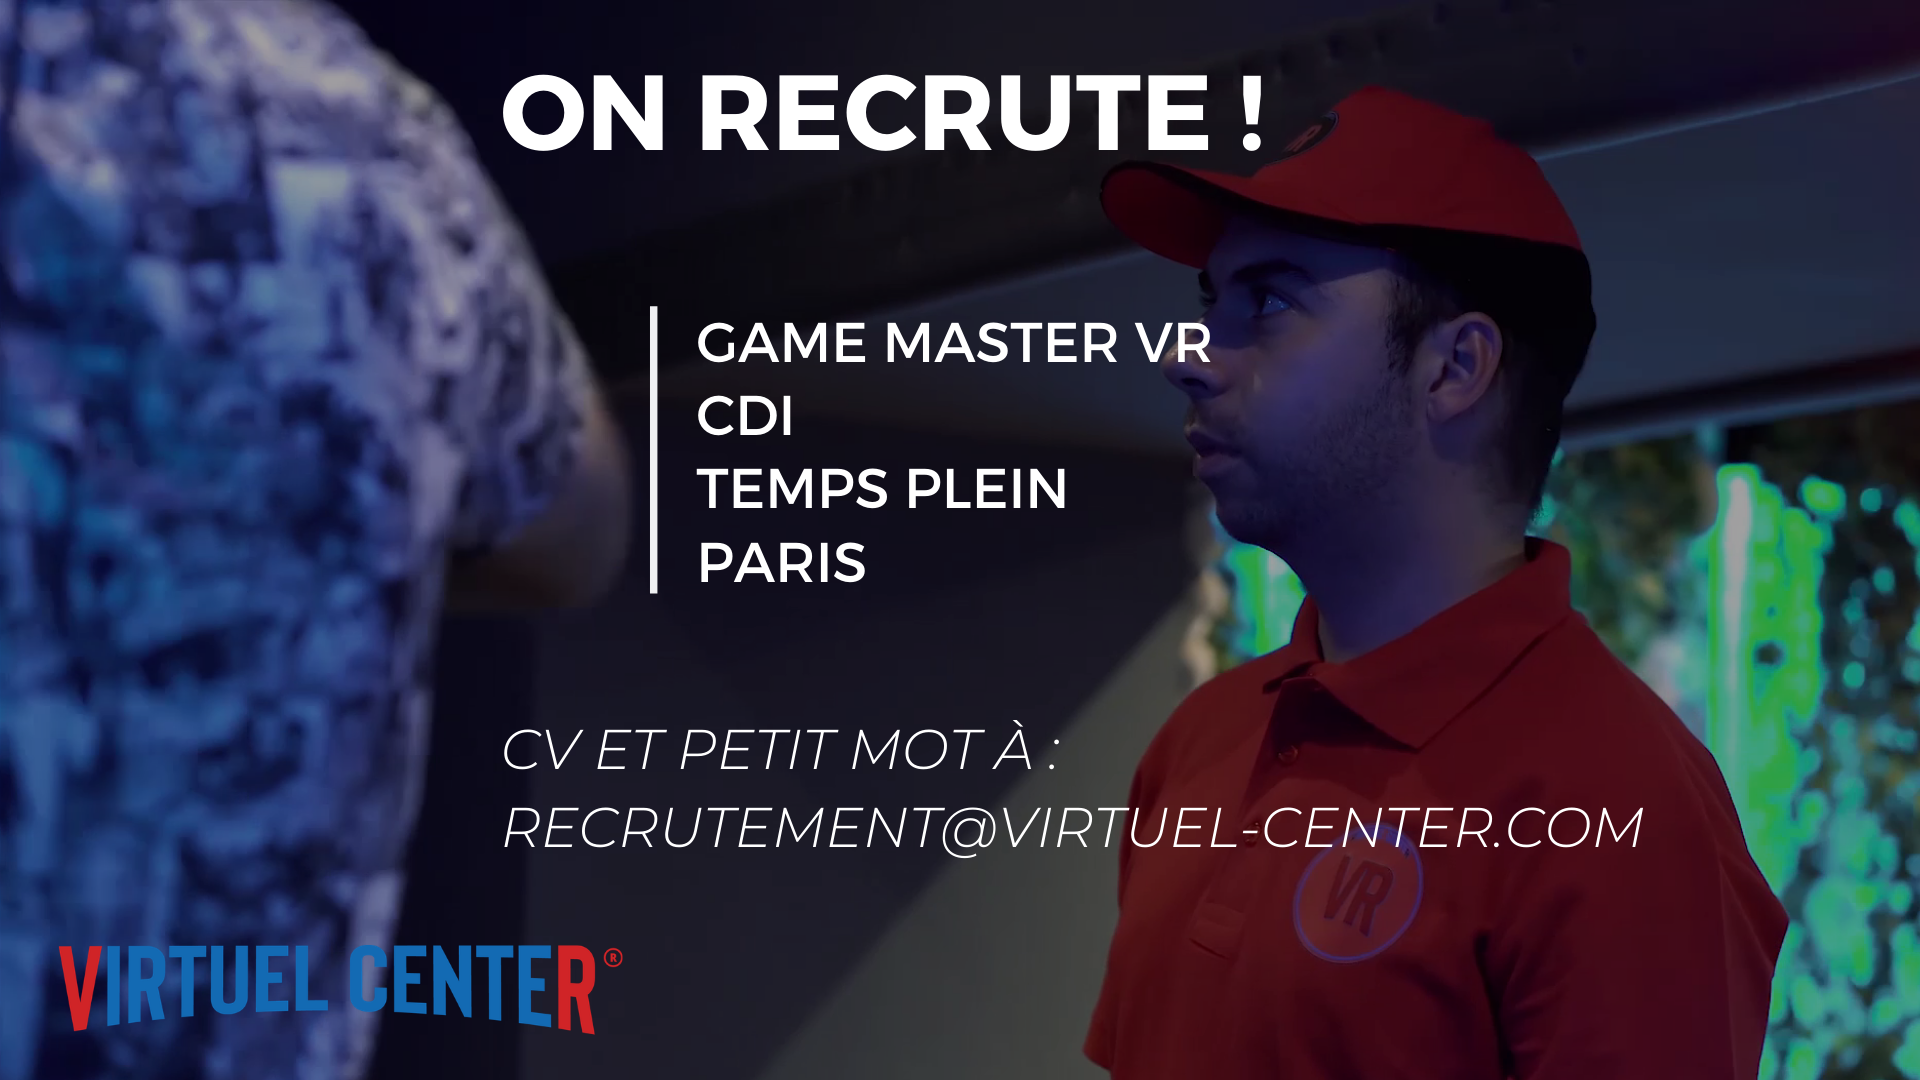 recrutement virtuel center